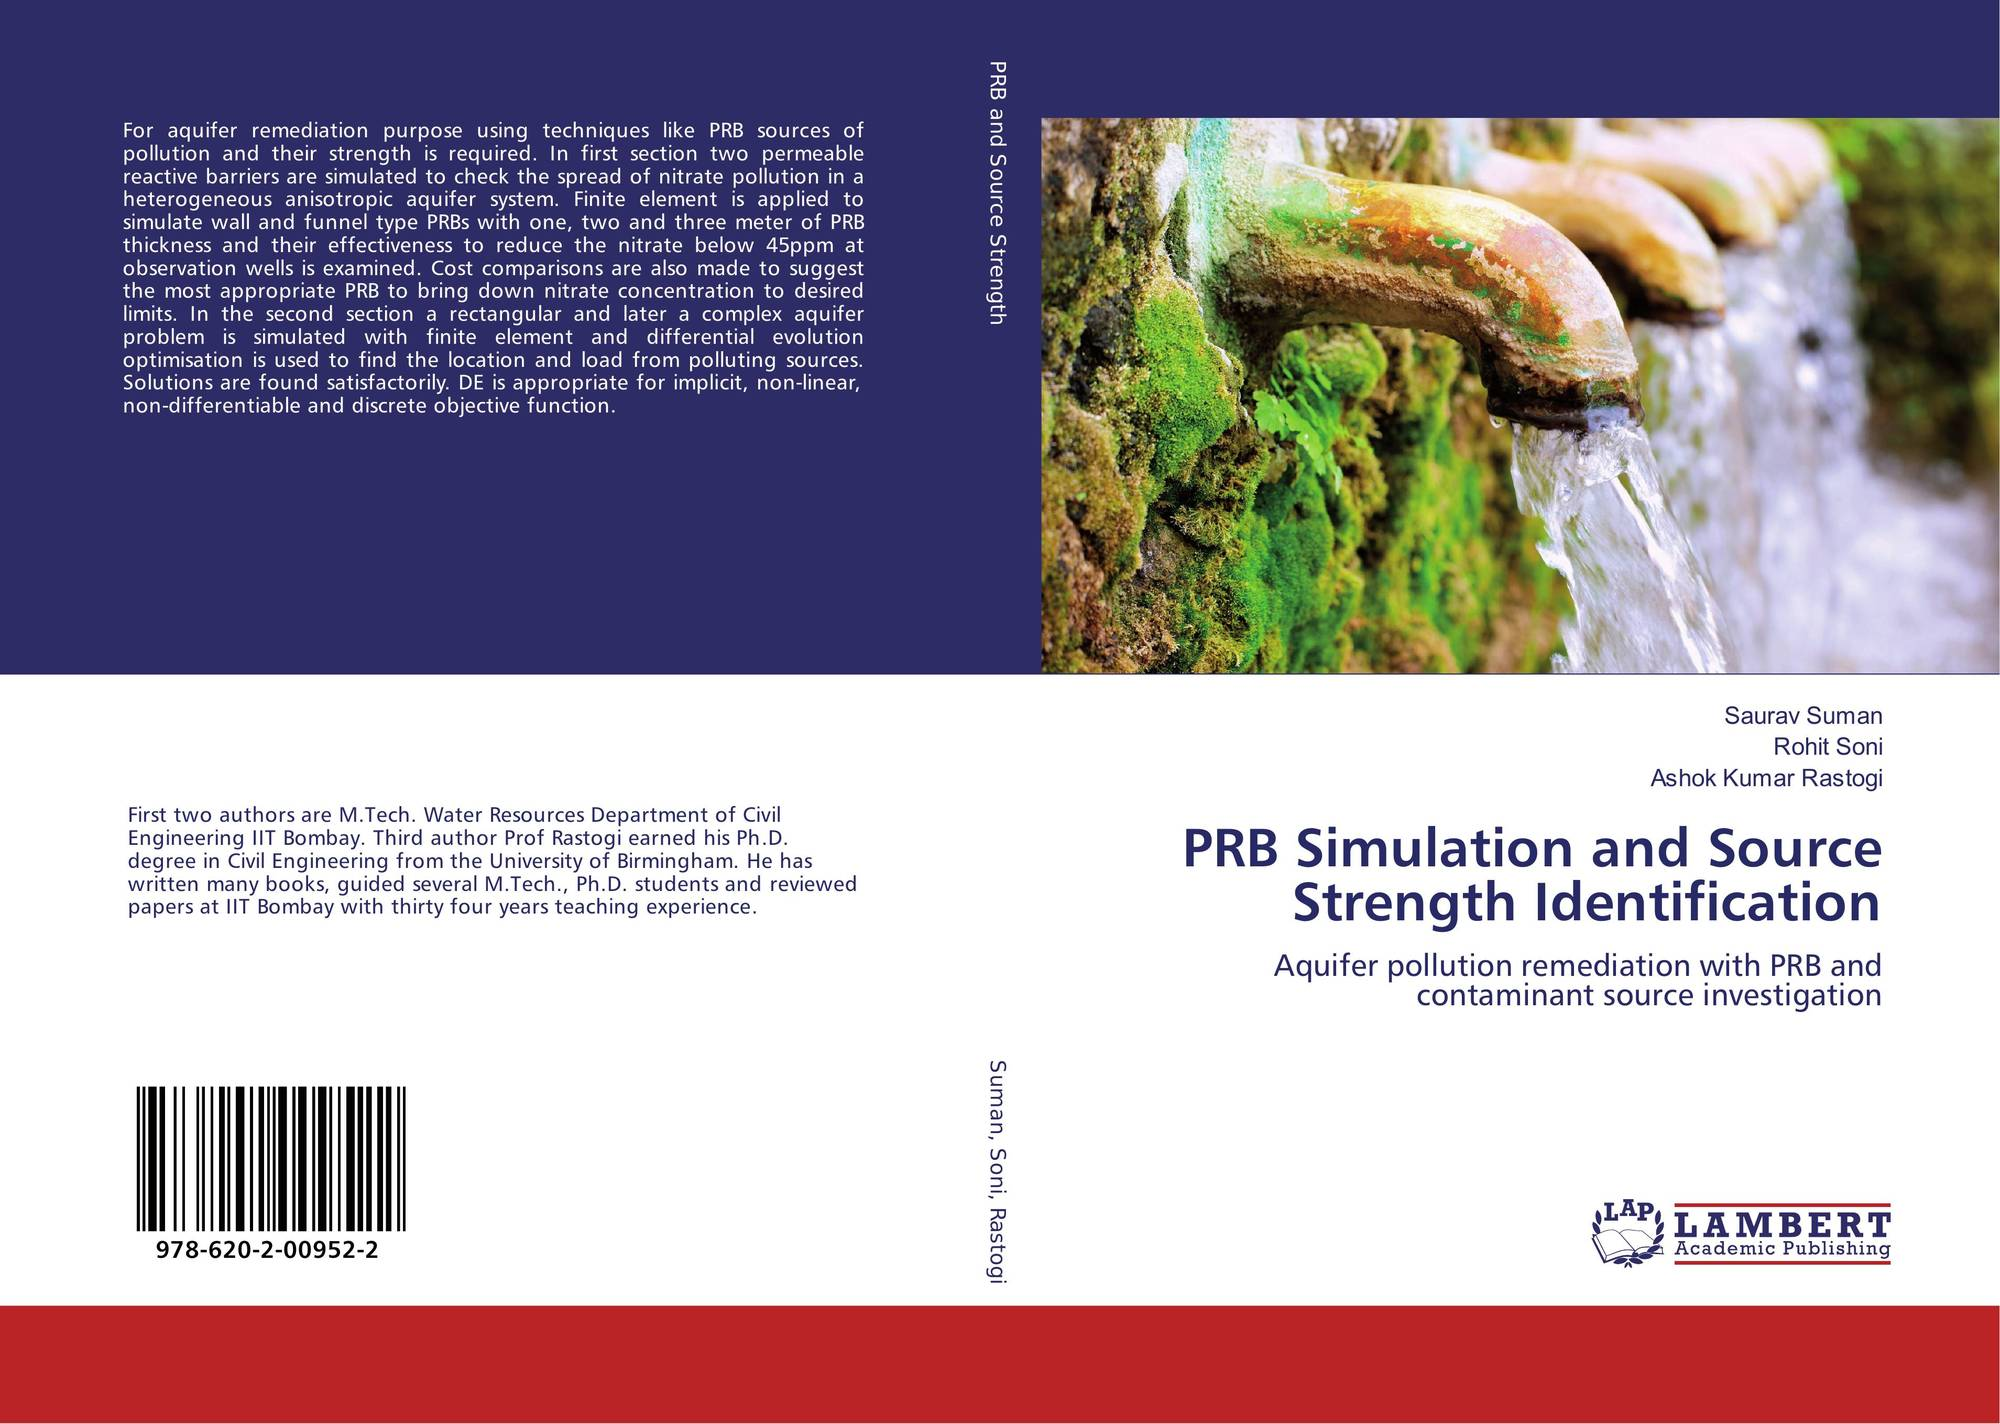 PRB Simulation and Source Strength Identification, 978-620-2-00952-2